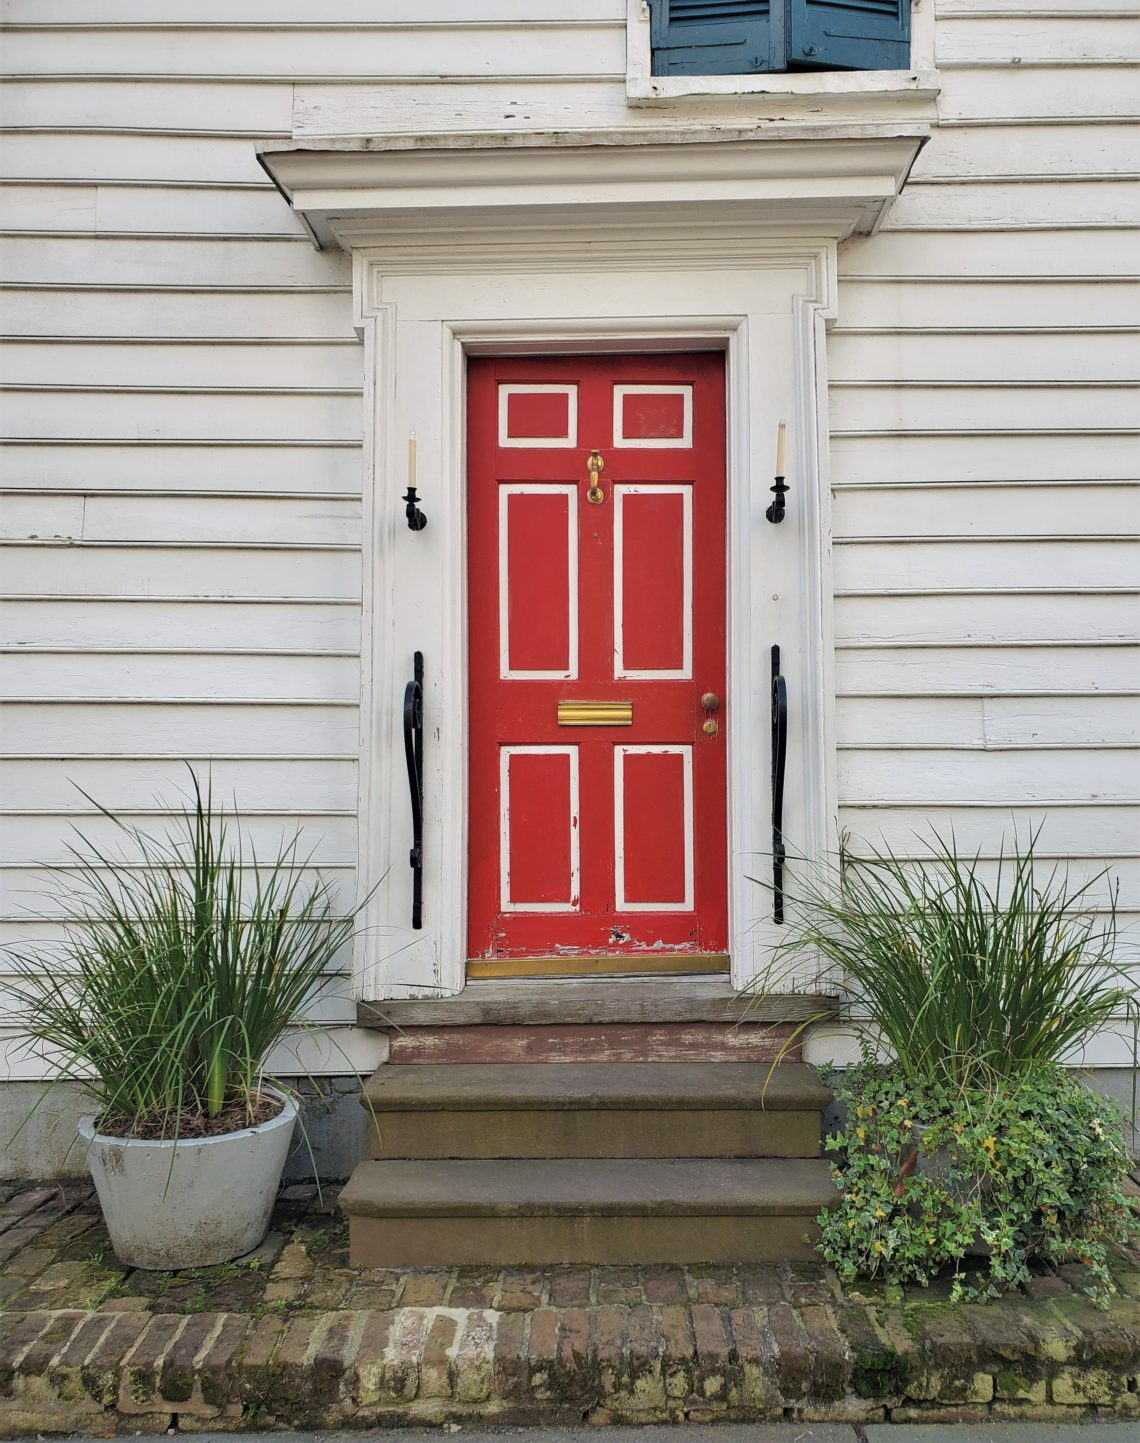 """This cool door is actually the side entrance to a grand house built in 1792 on Meeting Street. It originally opened on to what was then called """"Ladson Court"""" -- now Ladson Street, which is a full street connecting Meeting and King Streets."""